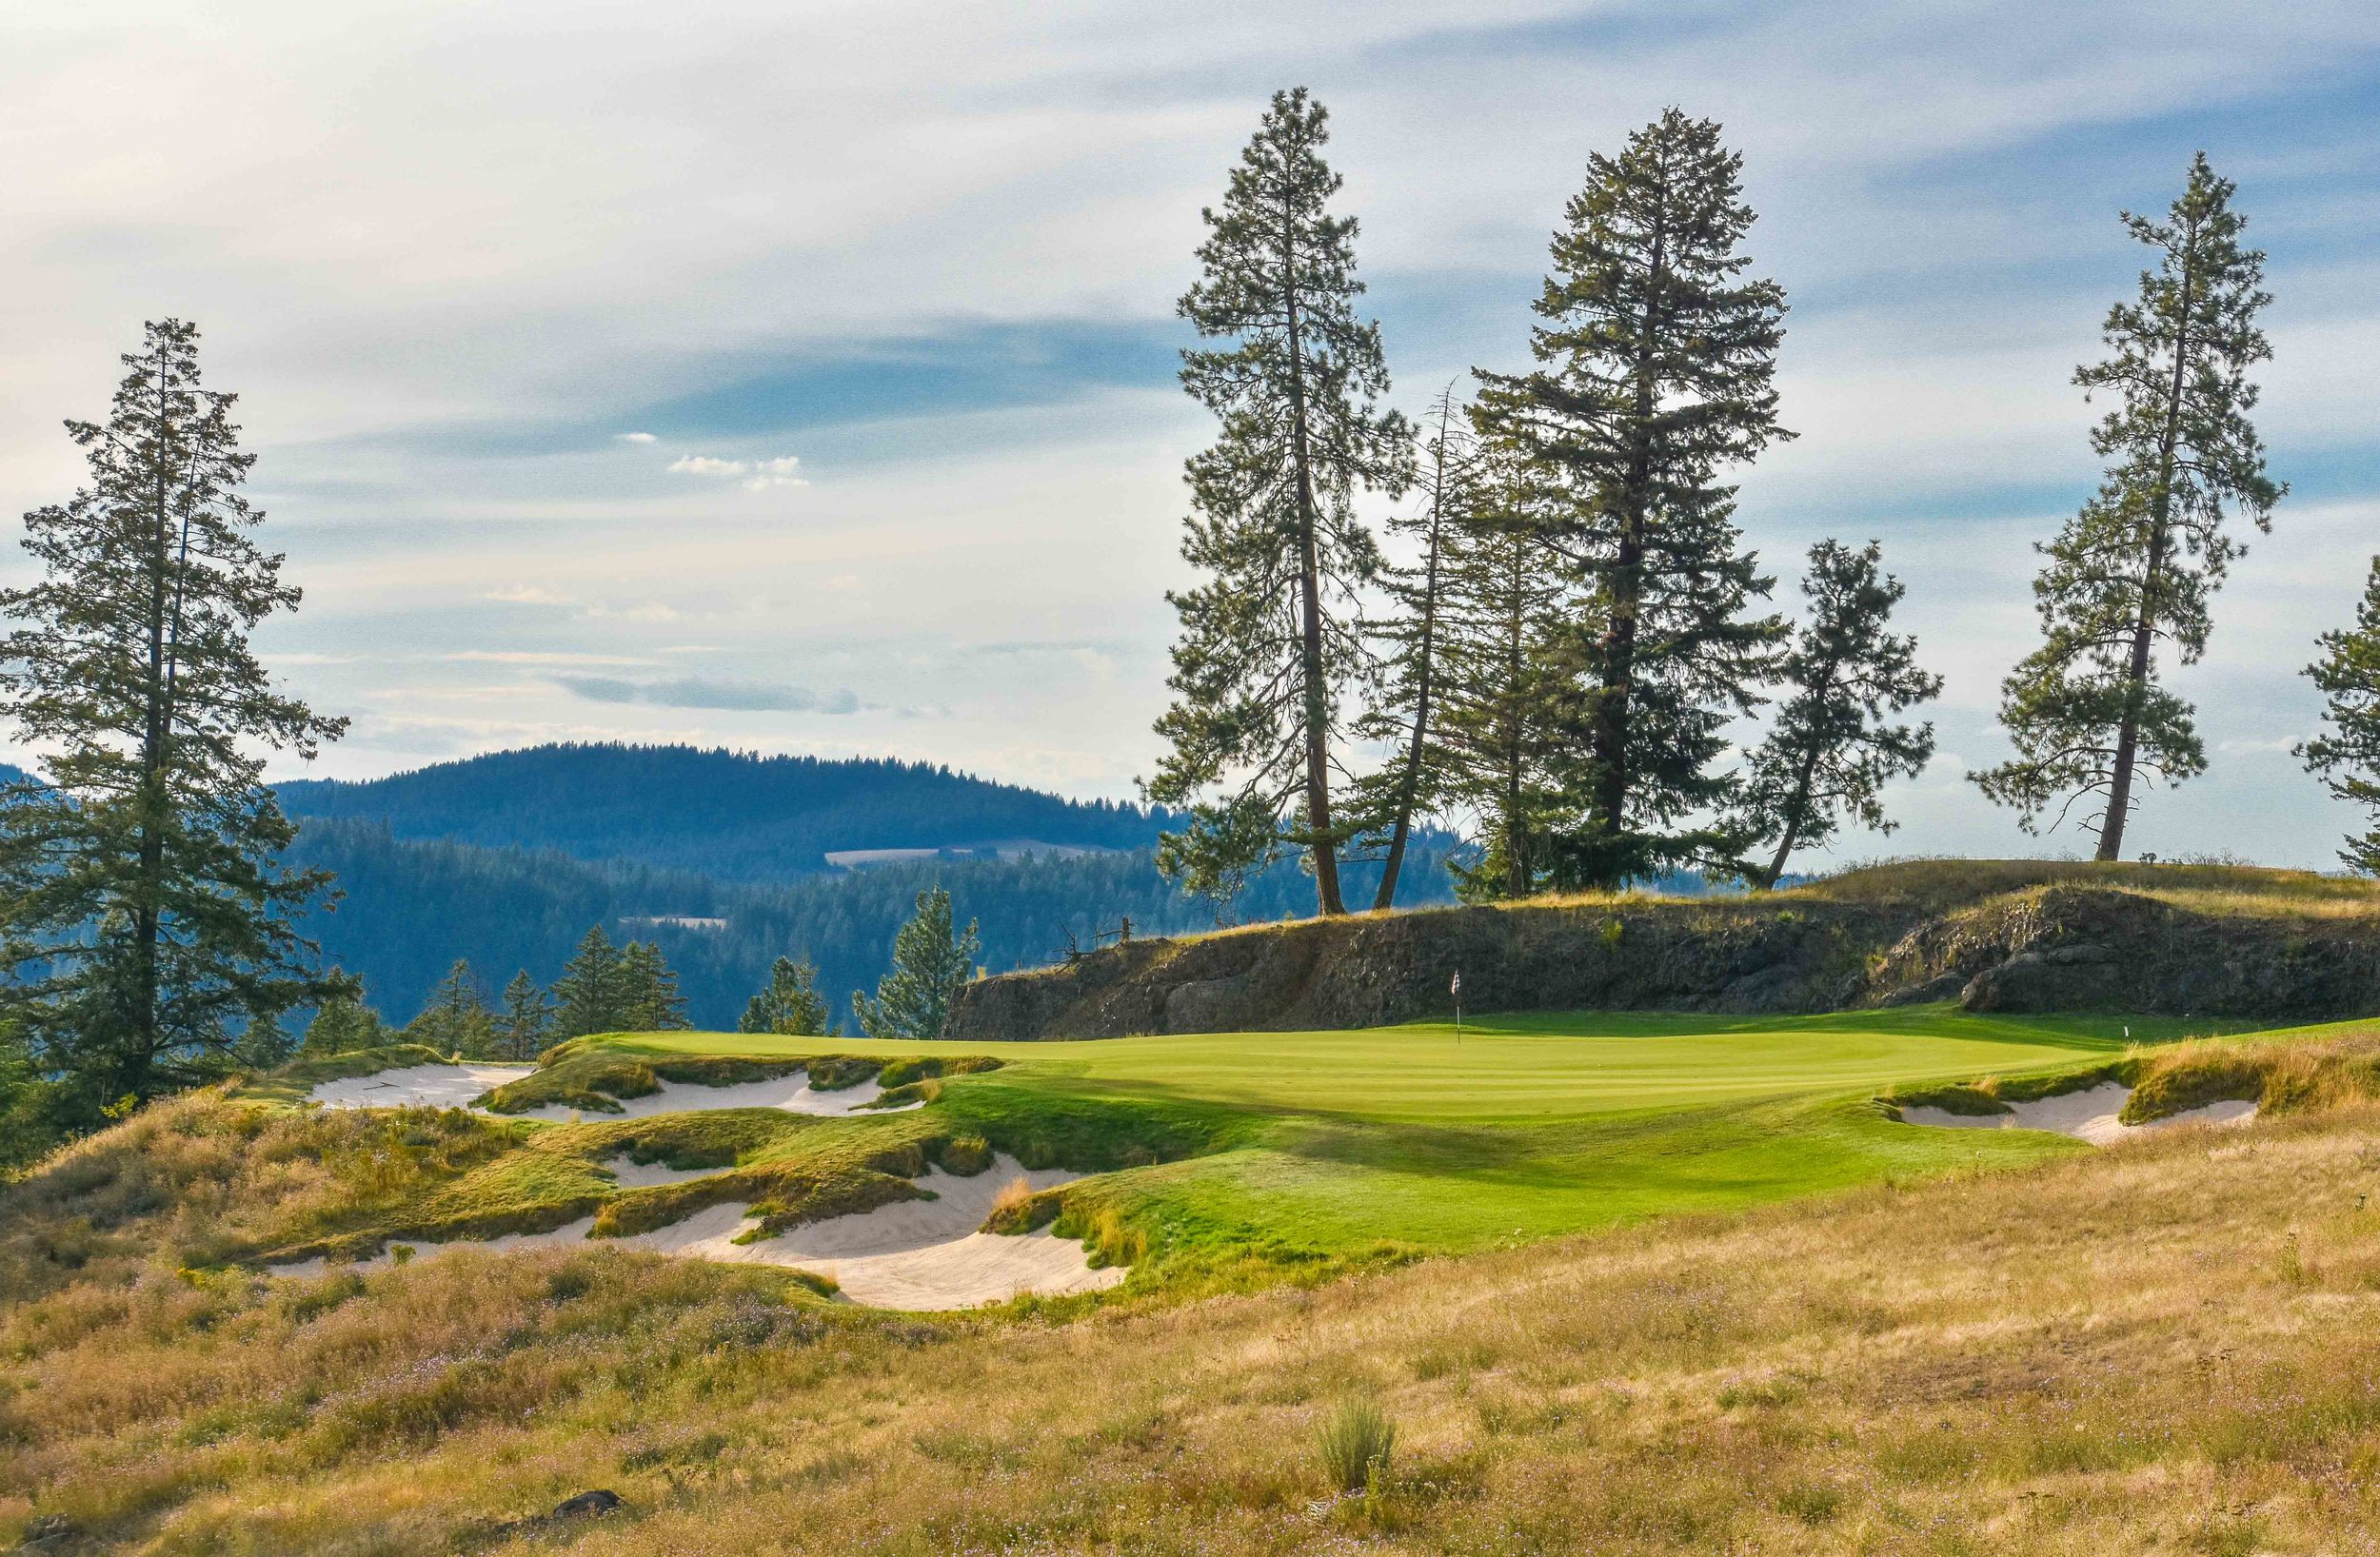 Gozzer Ranch comes in at #30 on America's Best Course's list.